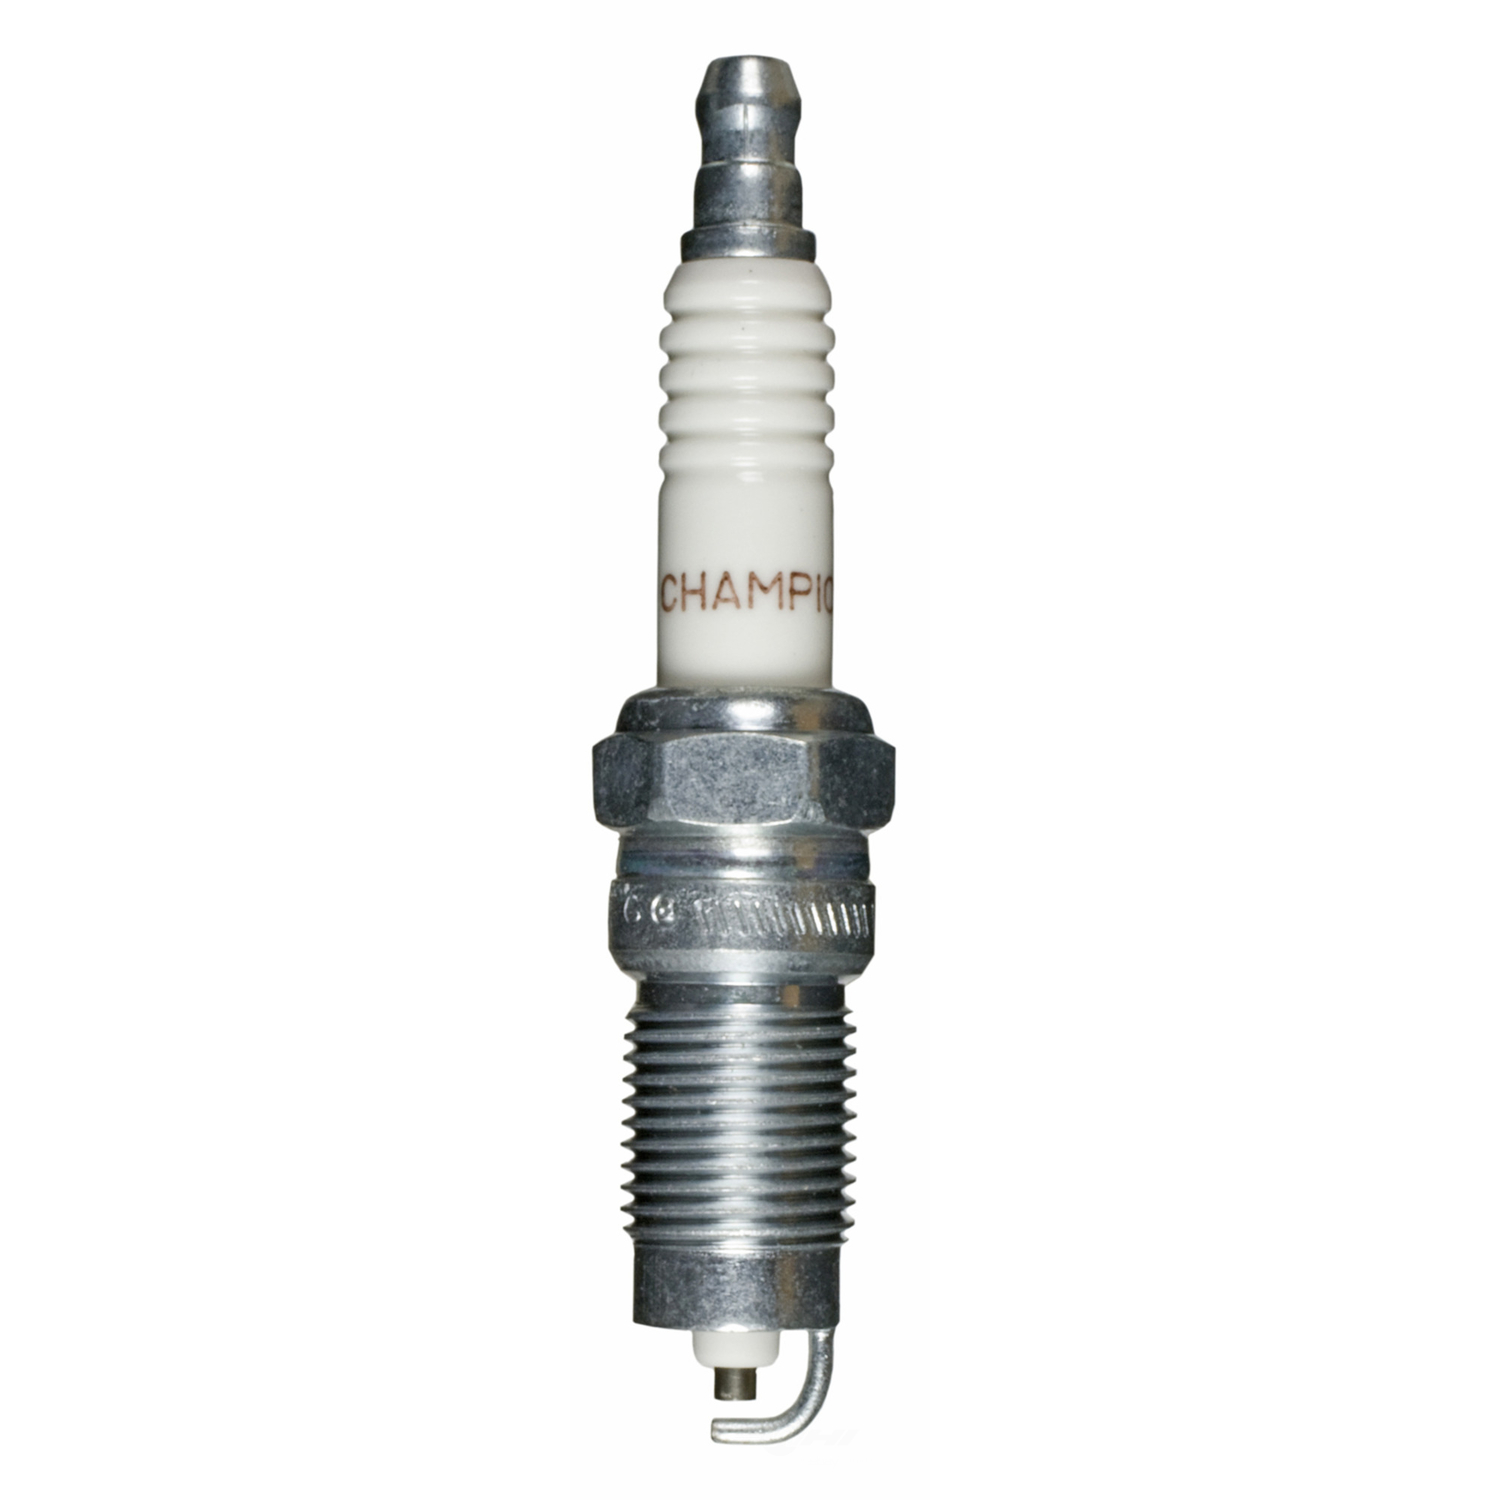 CHAMPION SPARK PLUGS - Copper Plus Spark Plug - CHA 403